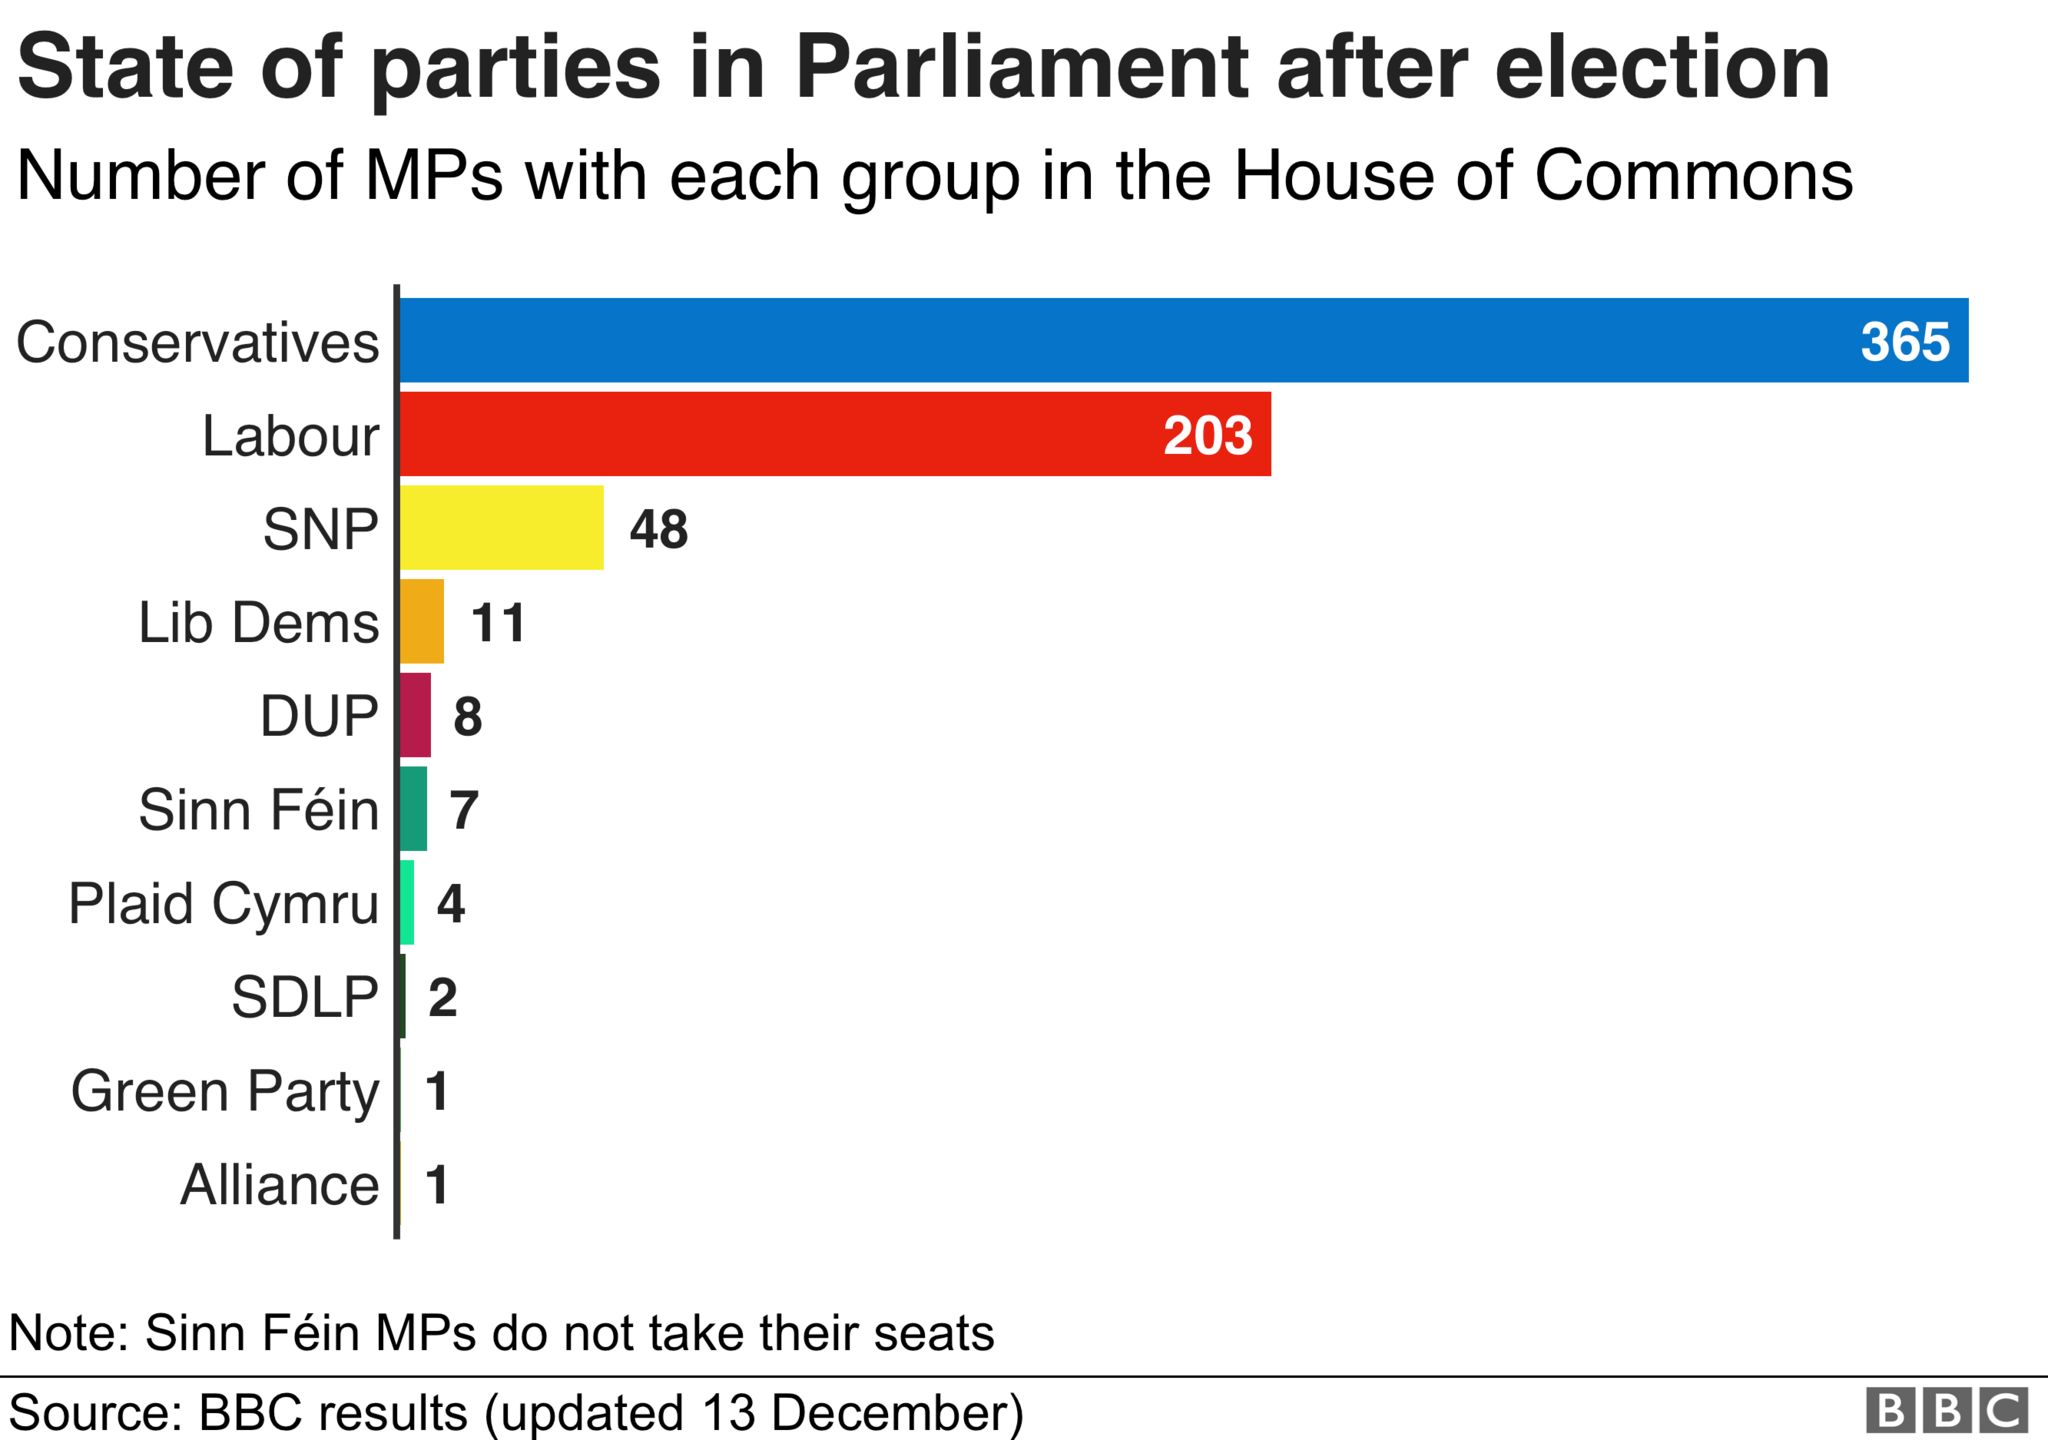 State of the parties in Parliament after the general election